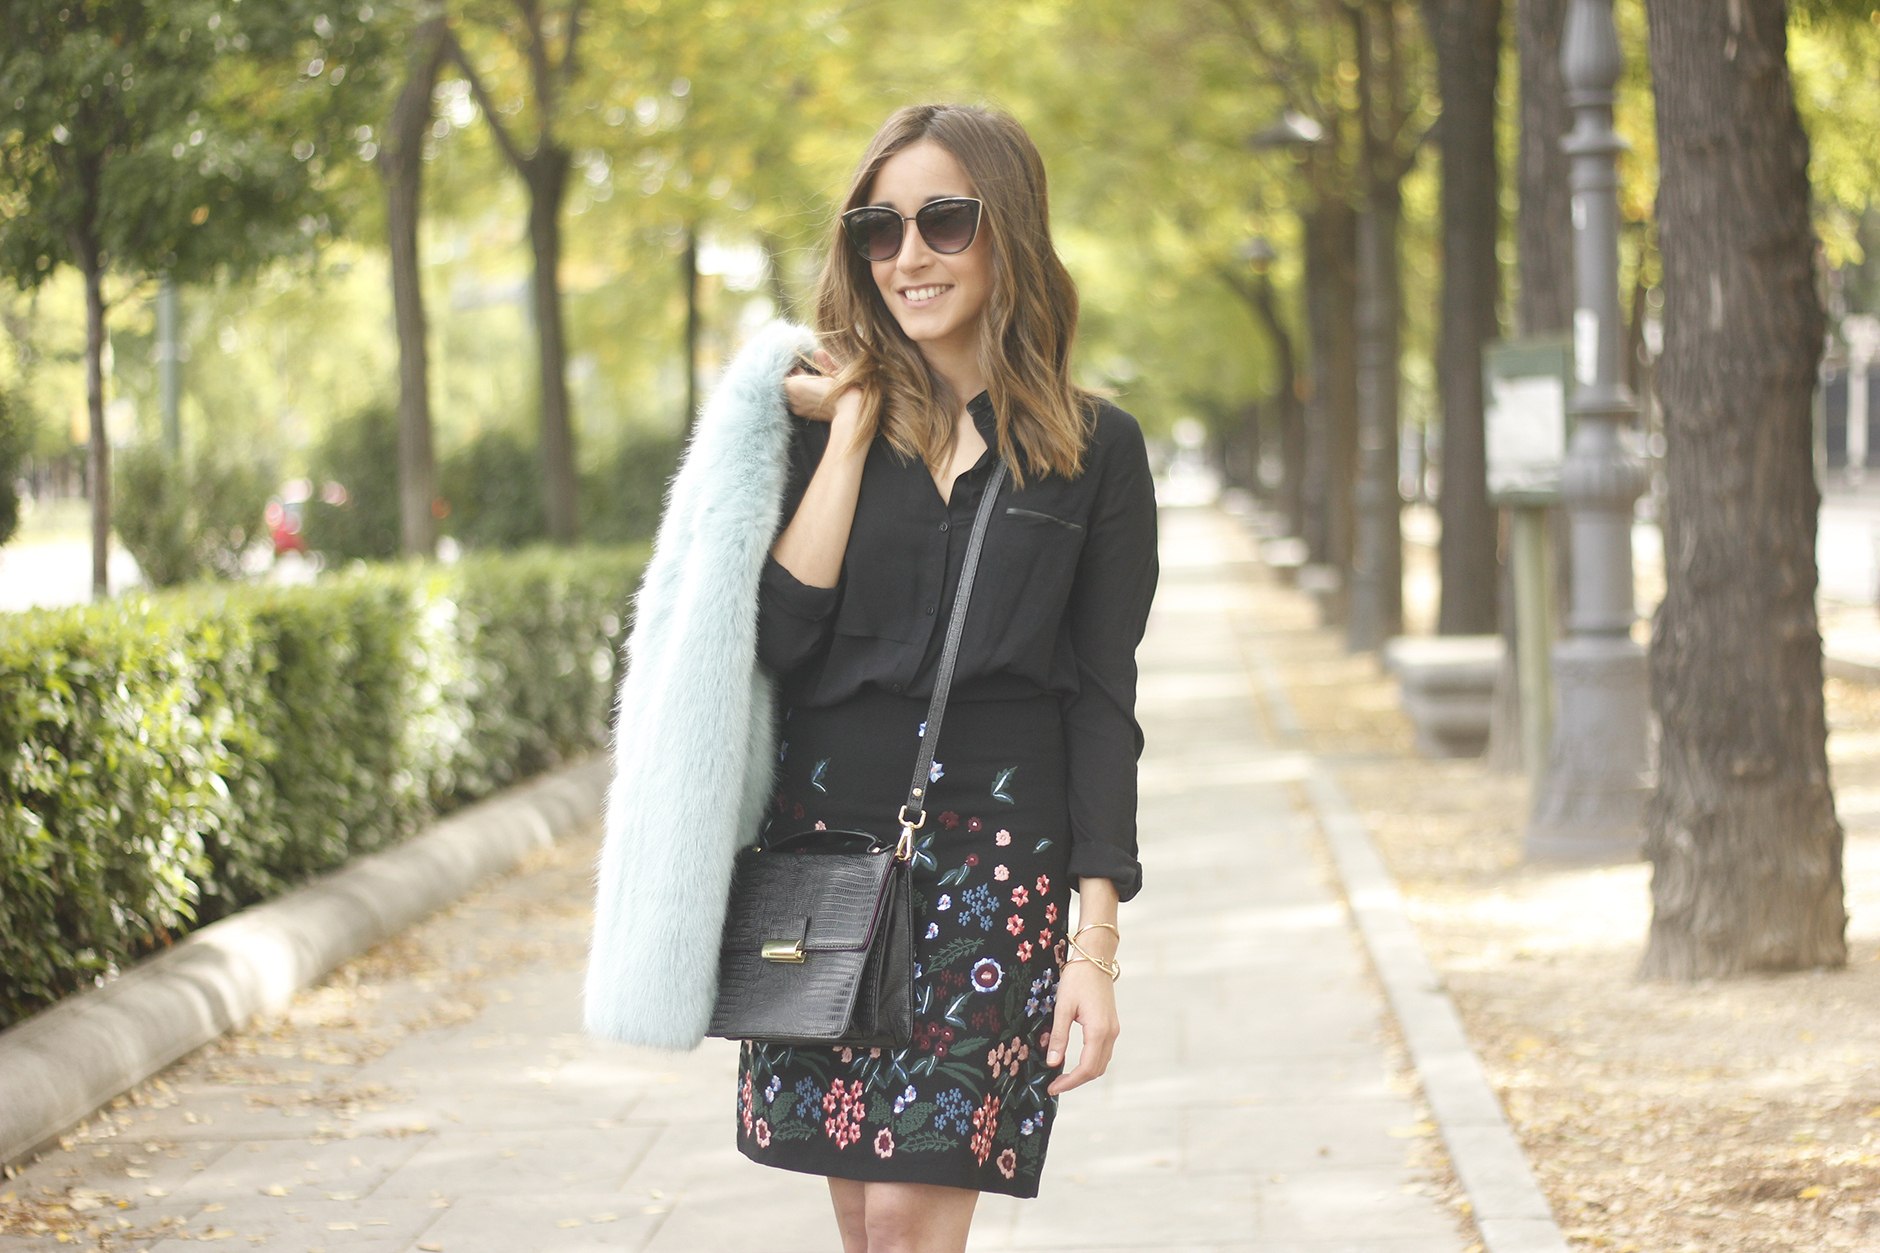 black skirt with flowers outfit16